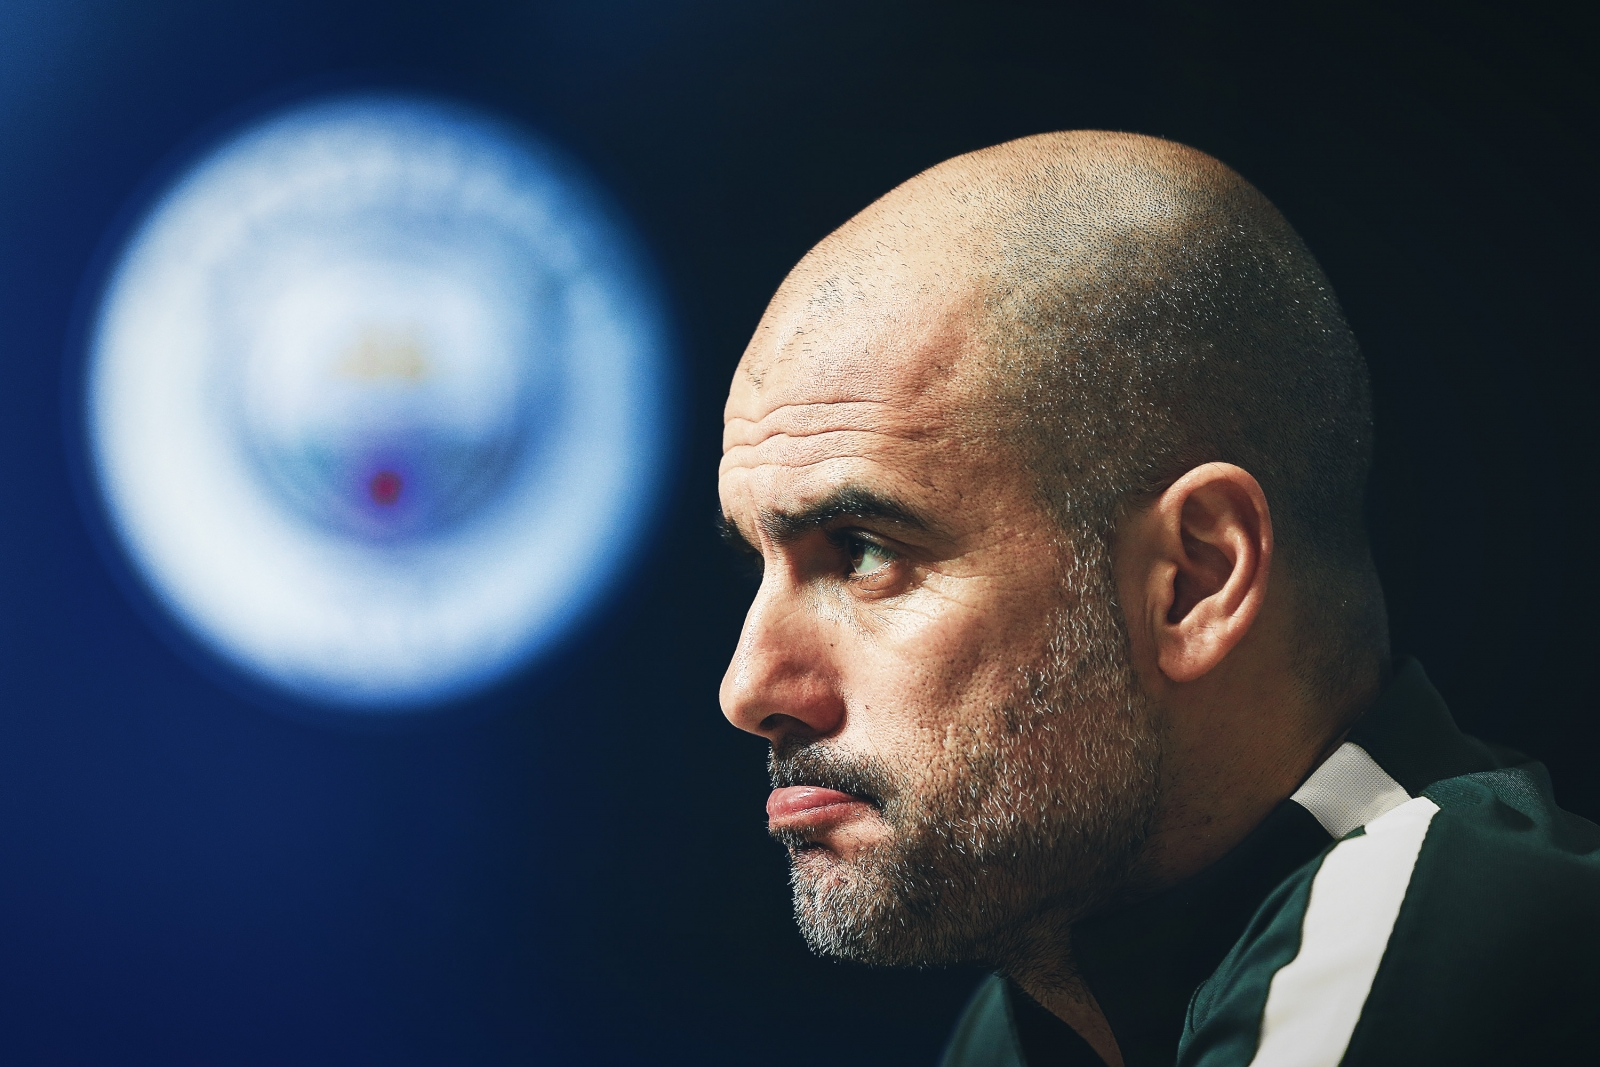 'I'm sure he will stay and keep winning trophies': Pablo Zabaleta backs Pep Guardiola to remain at Manchester City despite links with Juventus - Bóng Đá